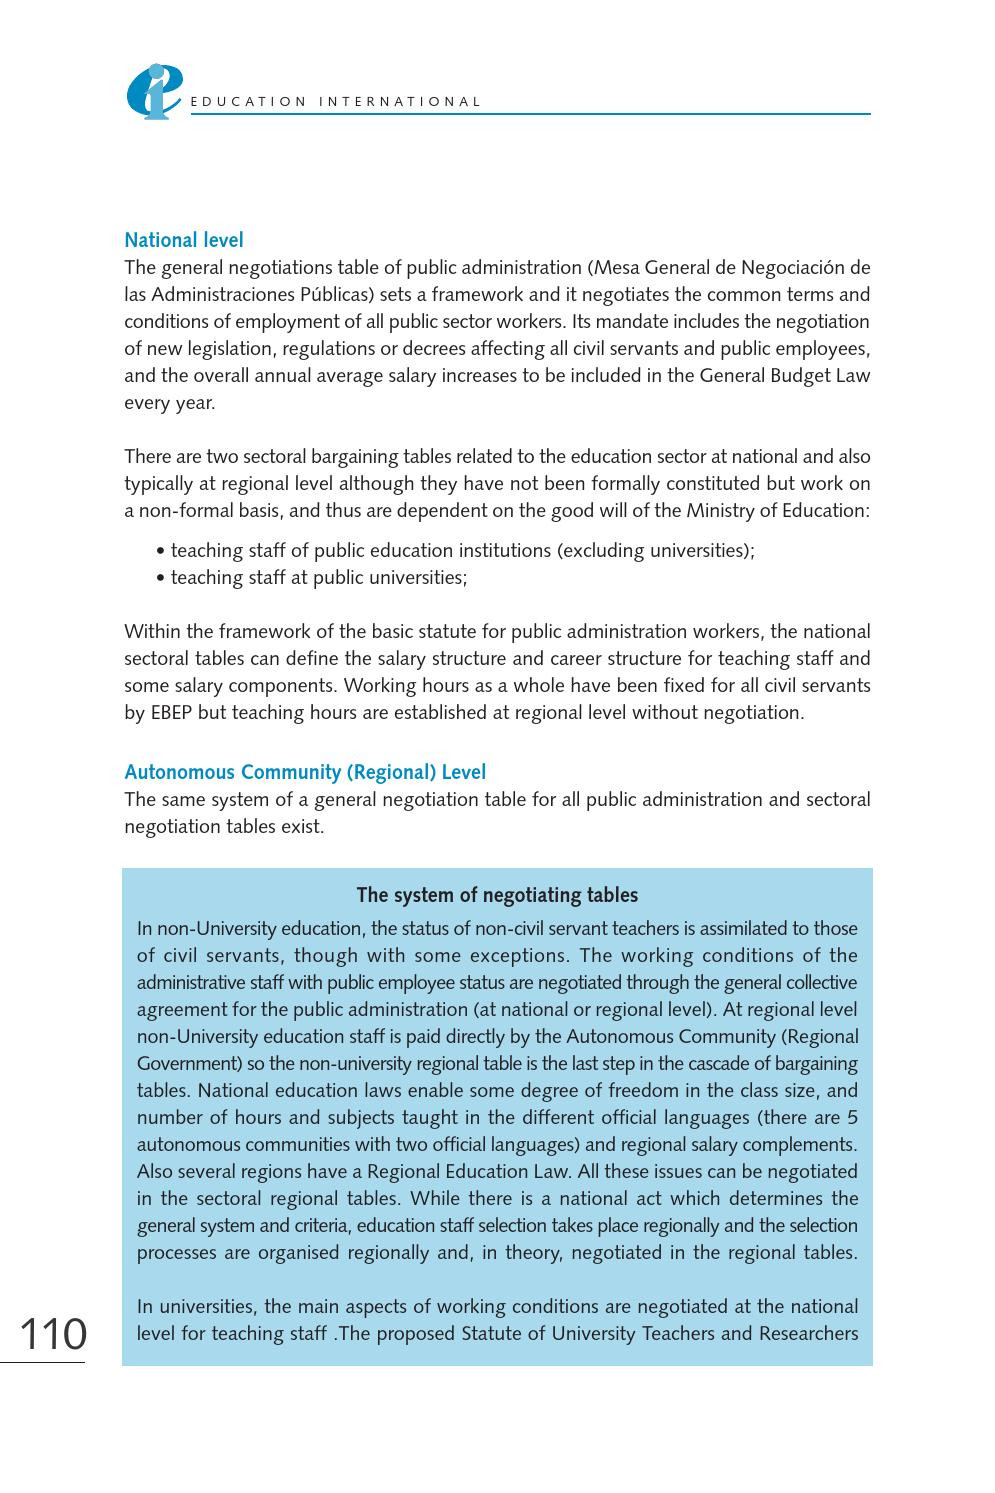 Study On Trends In Freedom Of Association And Collective Bargaining 2008 2013 By Education International Issuu